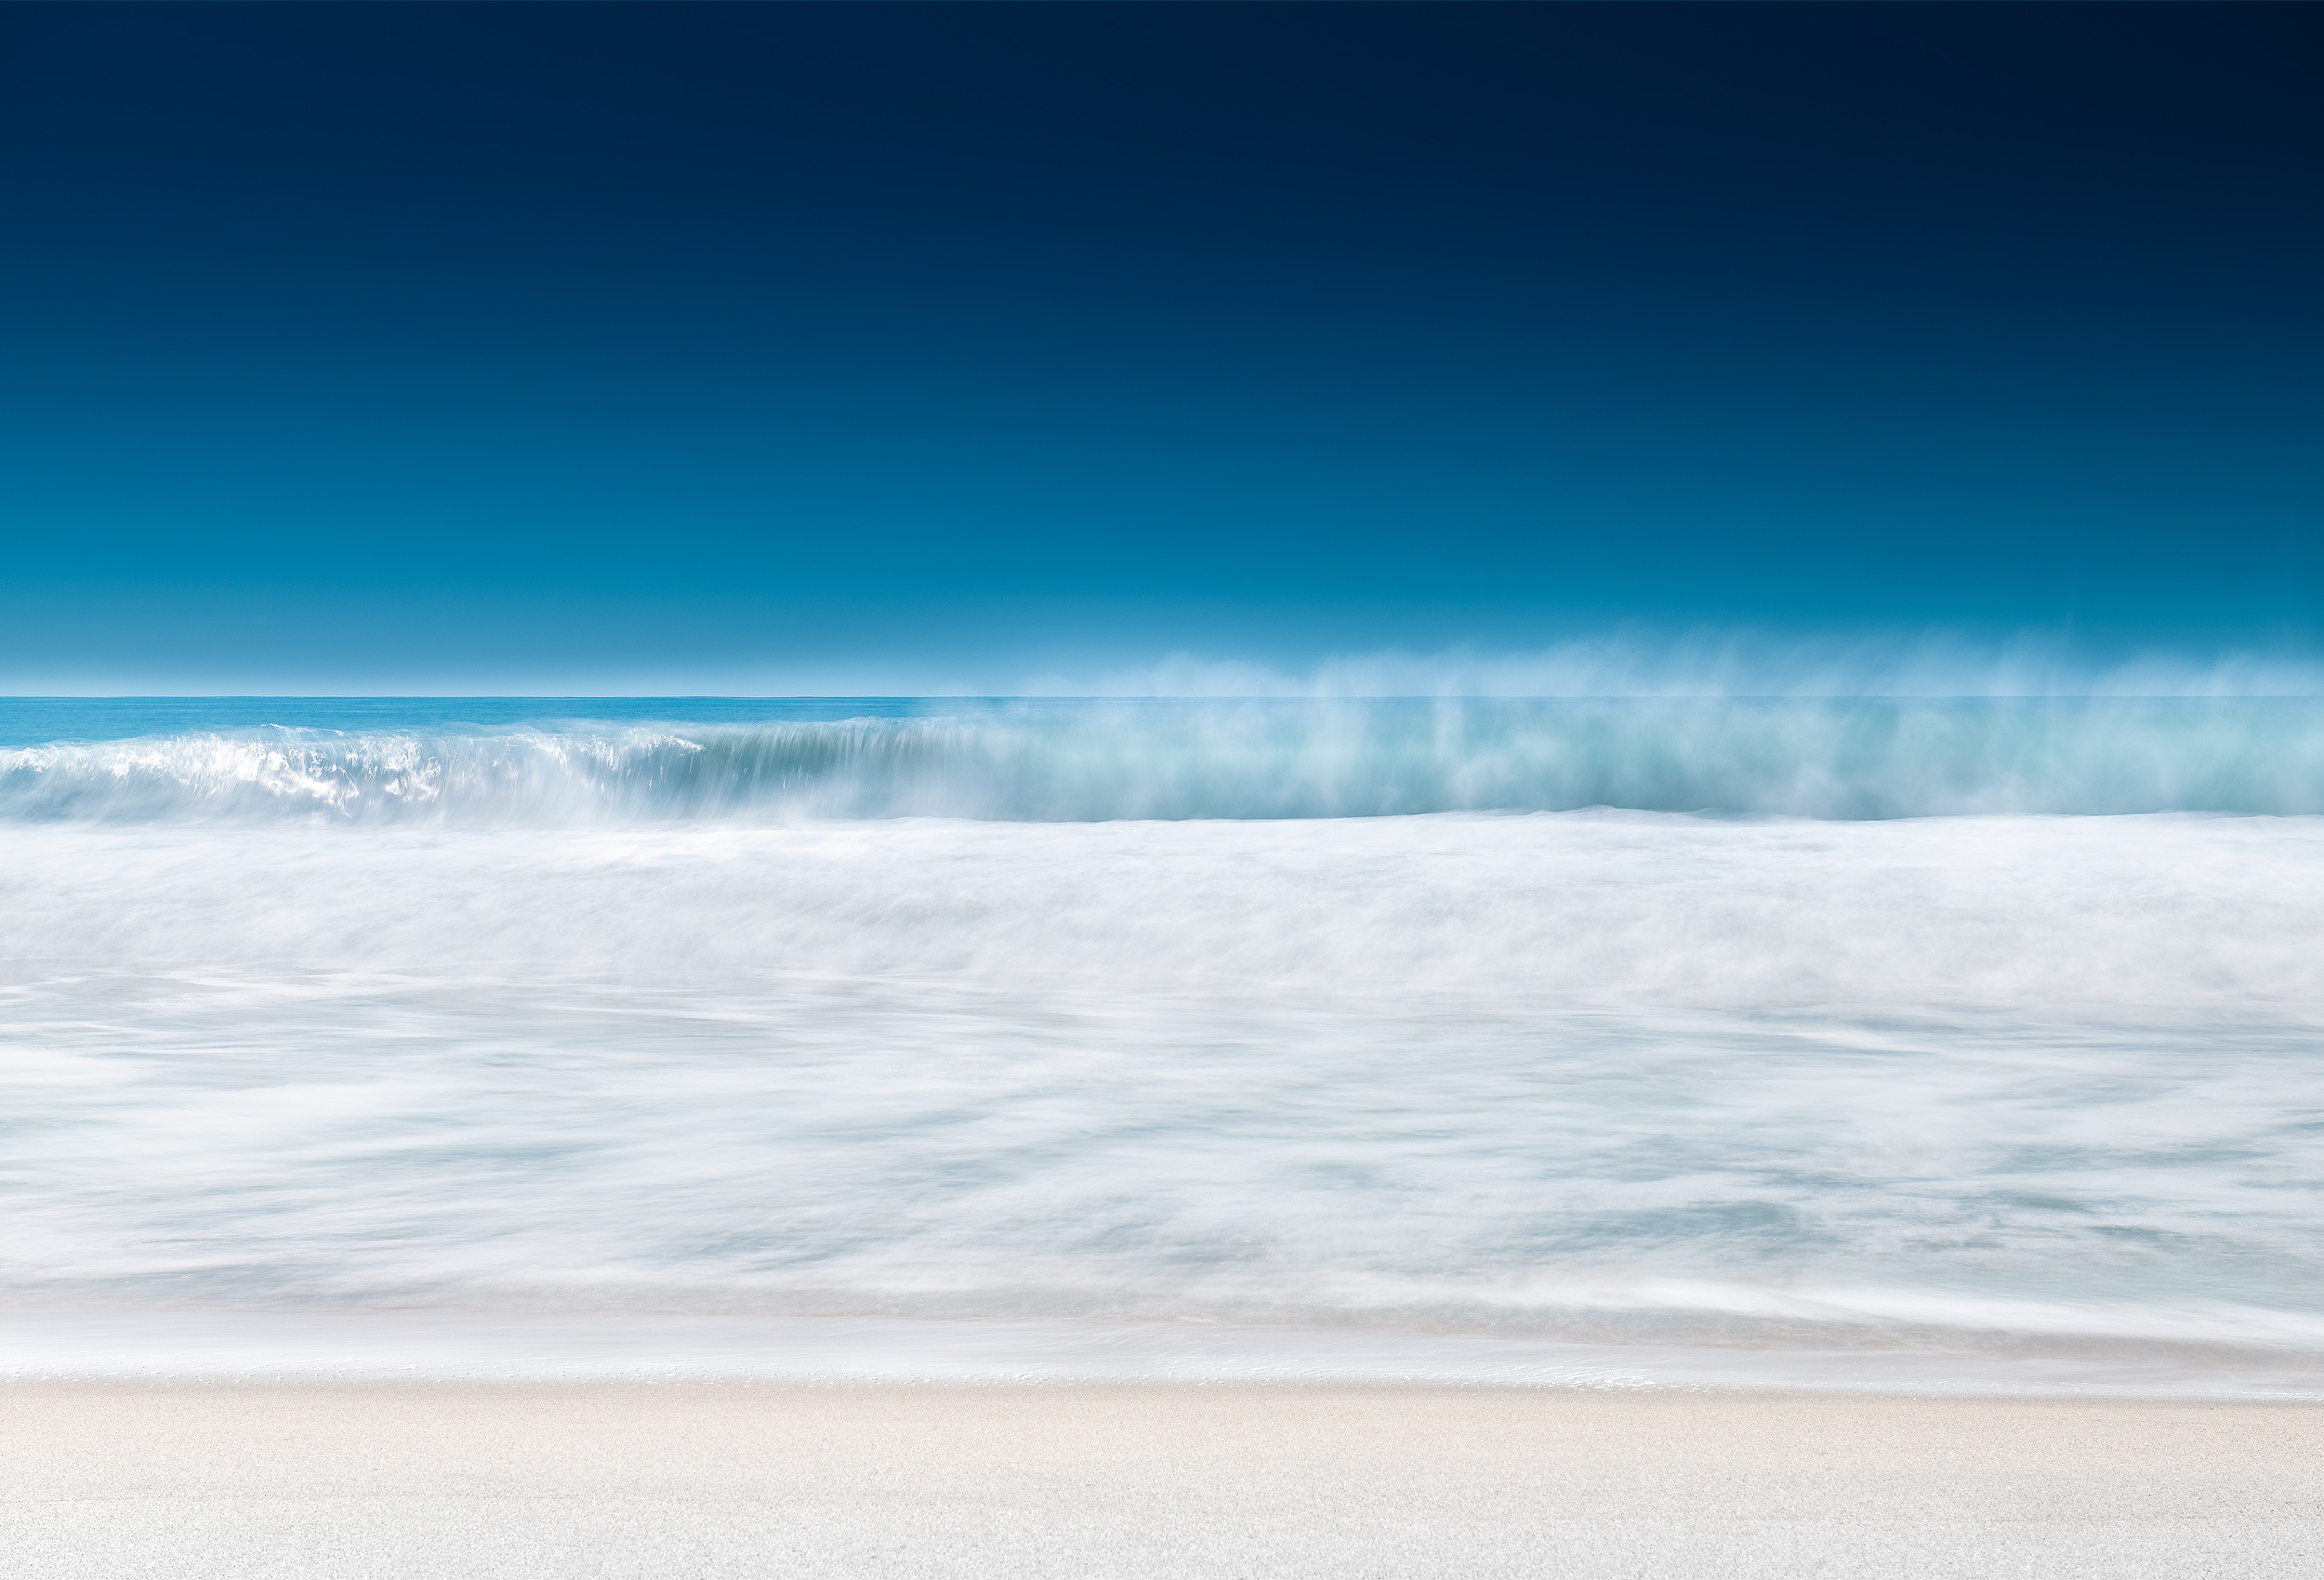 Long exposure of ocean wave at Zicatela Beach in Puerto Escondido by landscape photographer Kristopher Grunert.